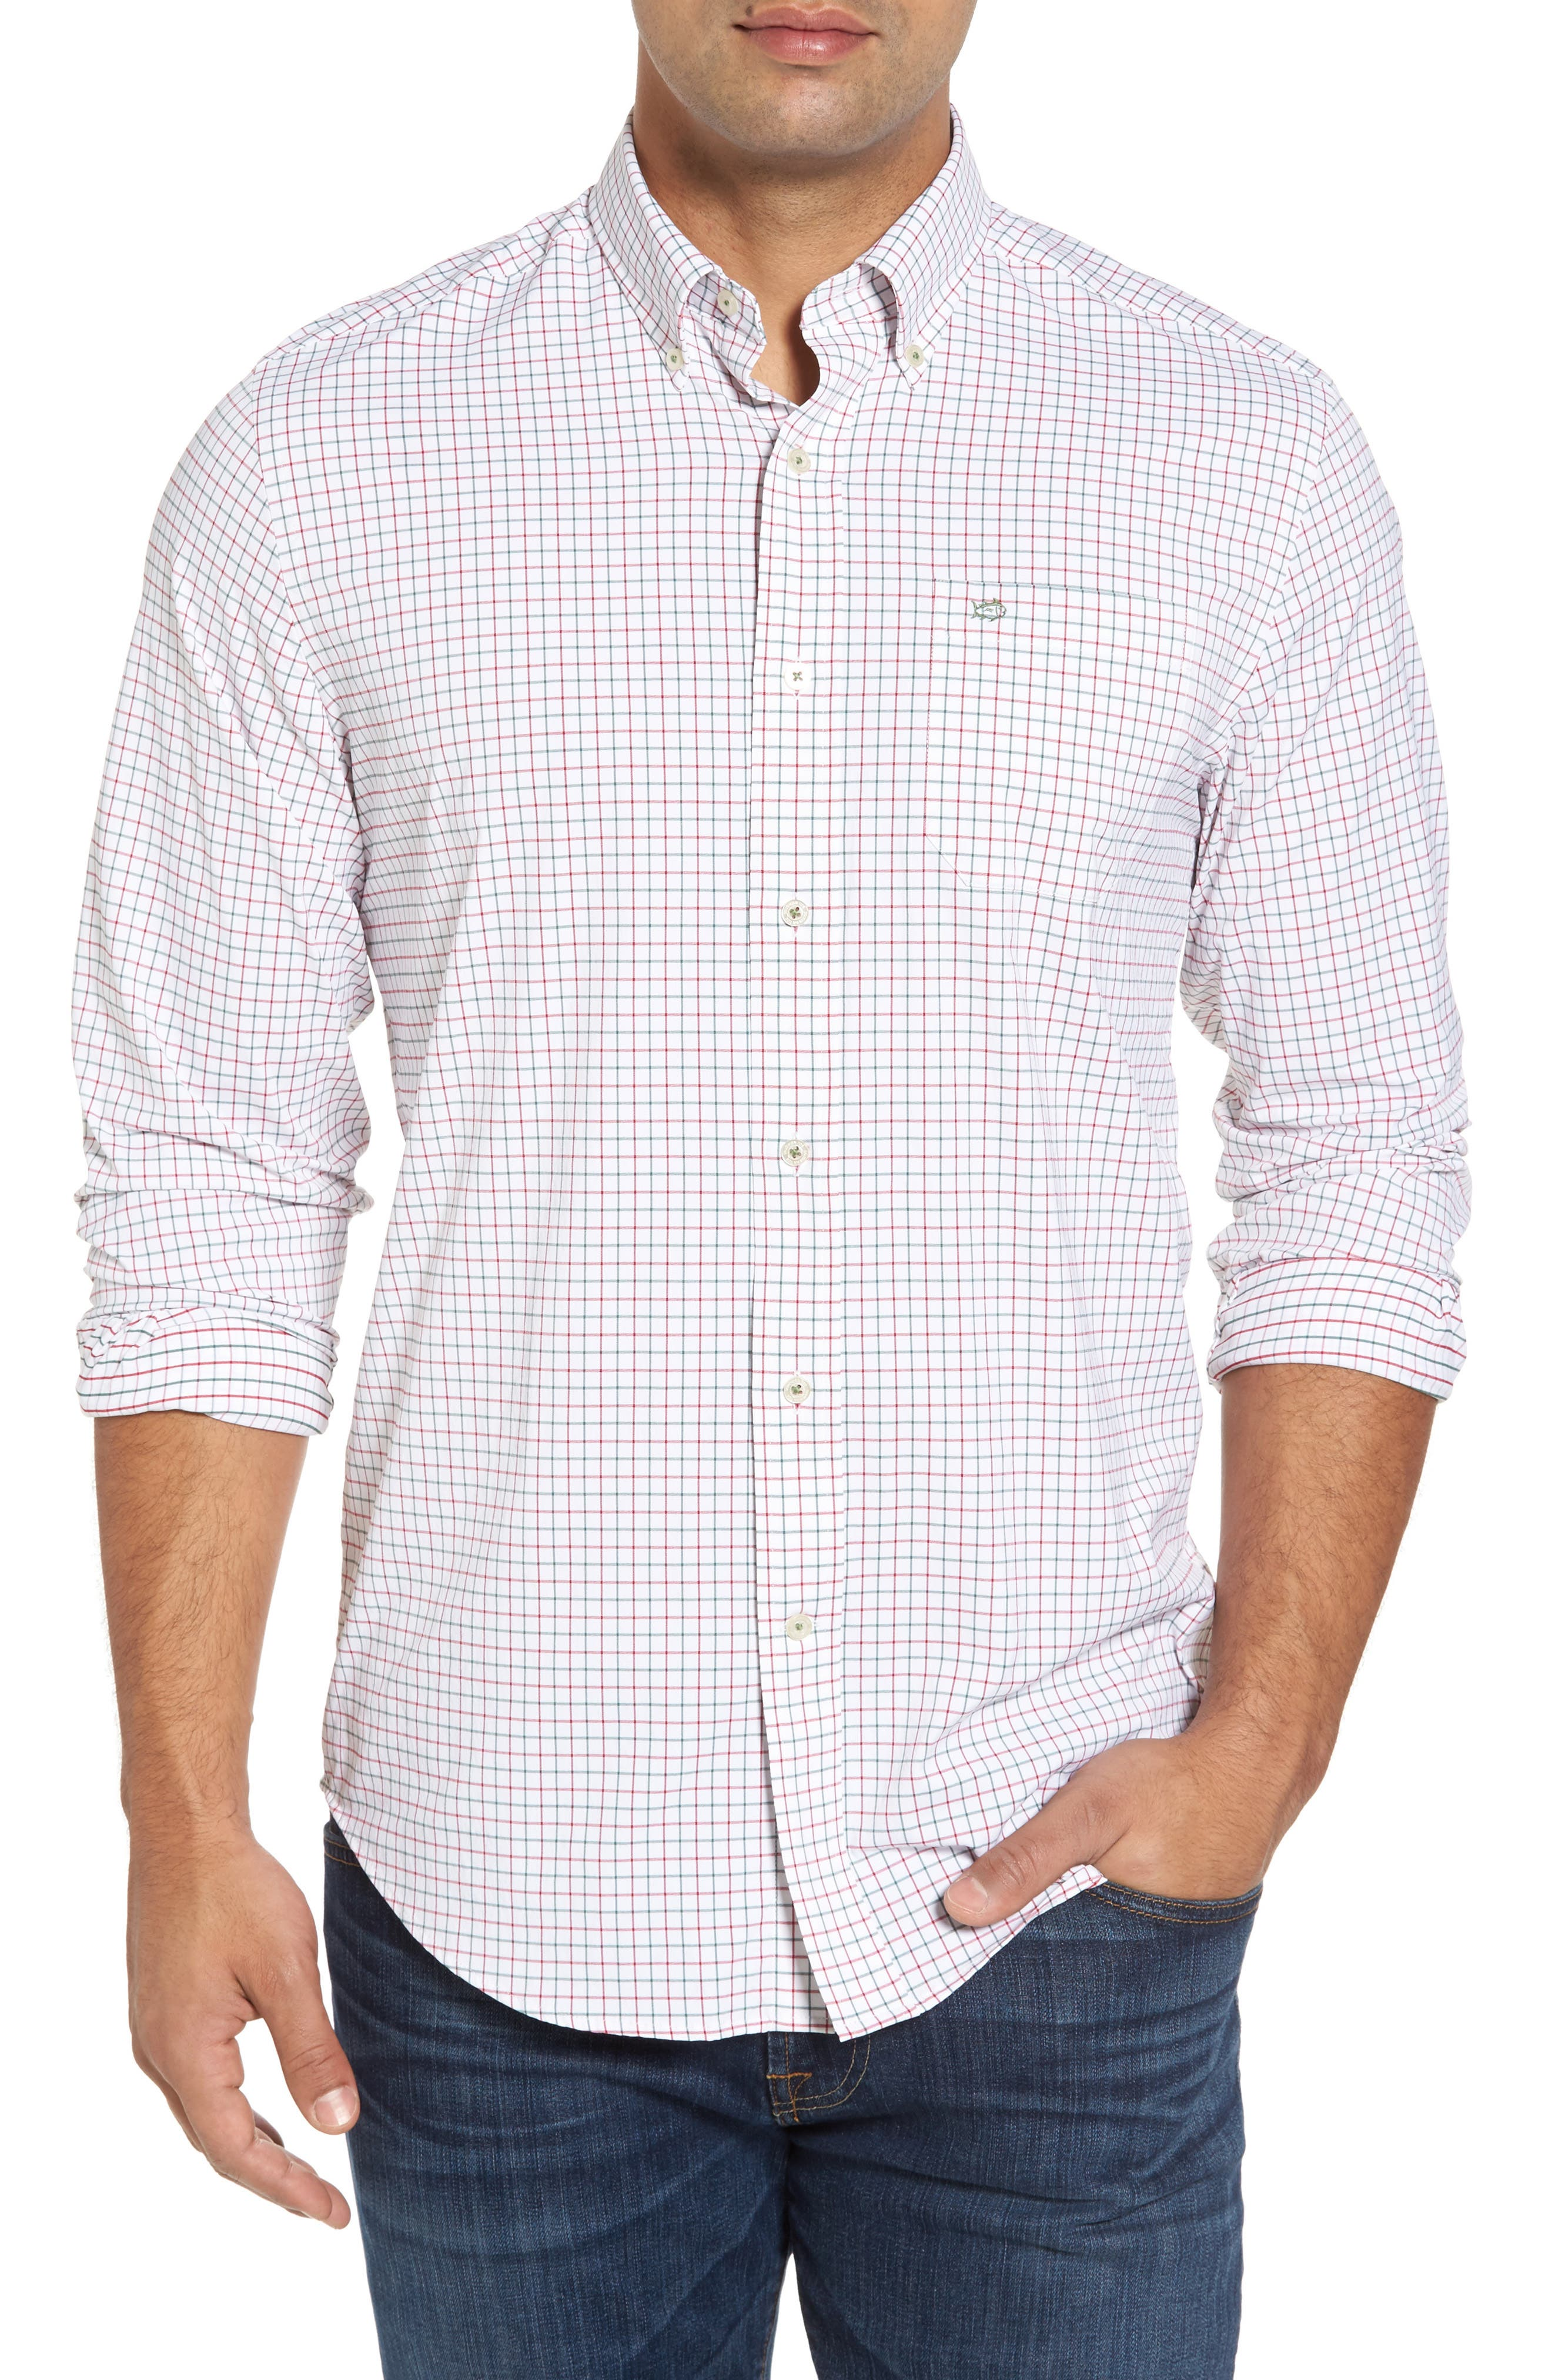 Cromwell Tattersall Performance Classic Fit Sport Shirt,                         Main,                         color, 107